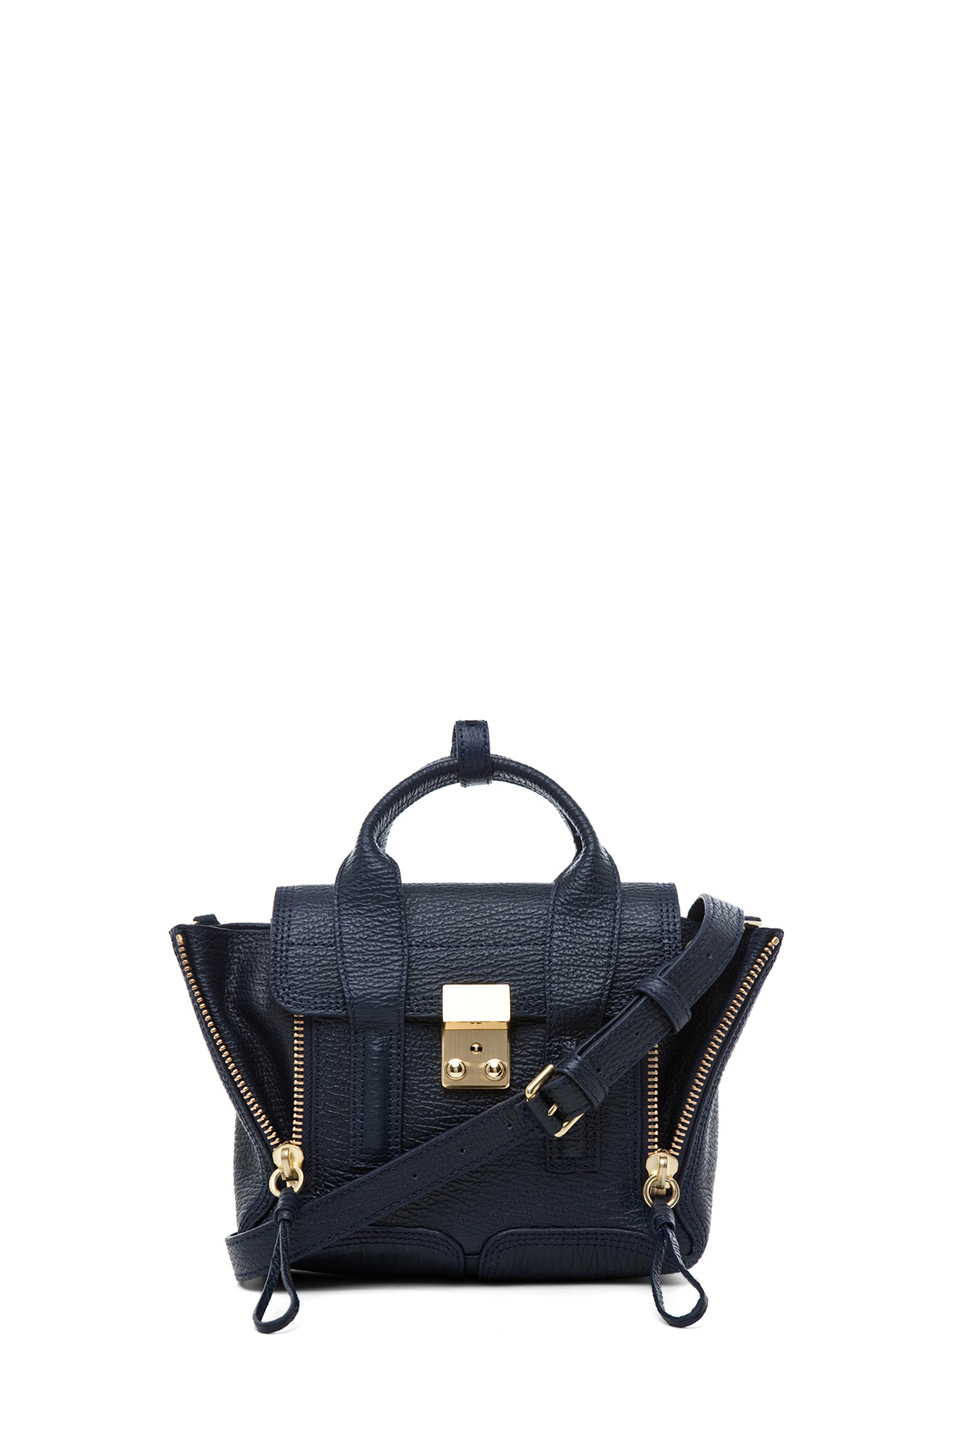 3.1 phillip lim|Mini Pashli Satchel in Ink